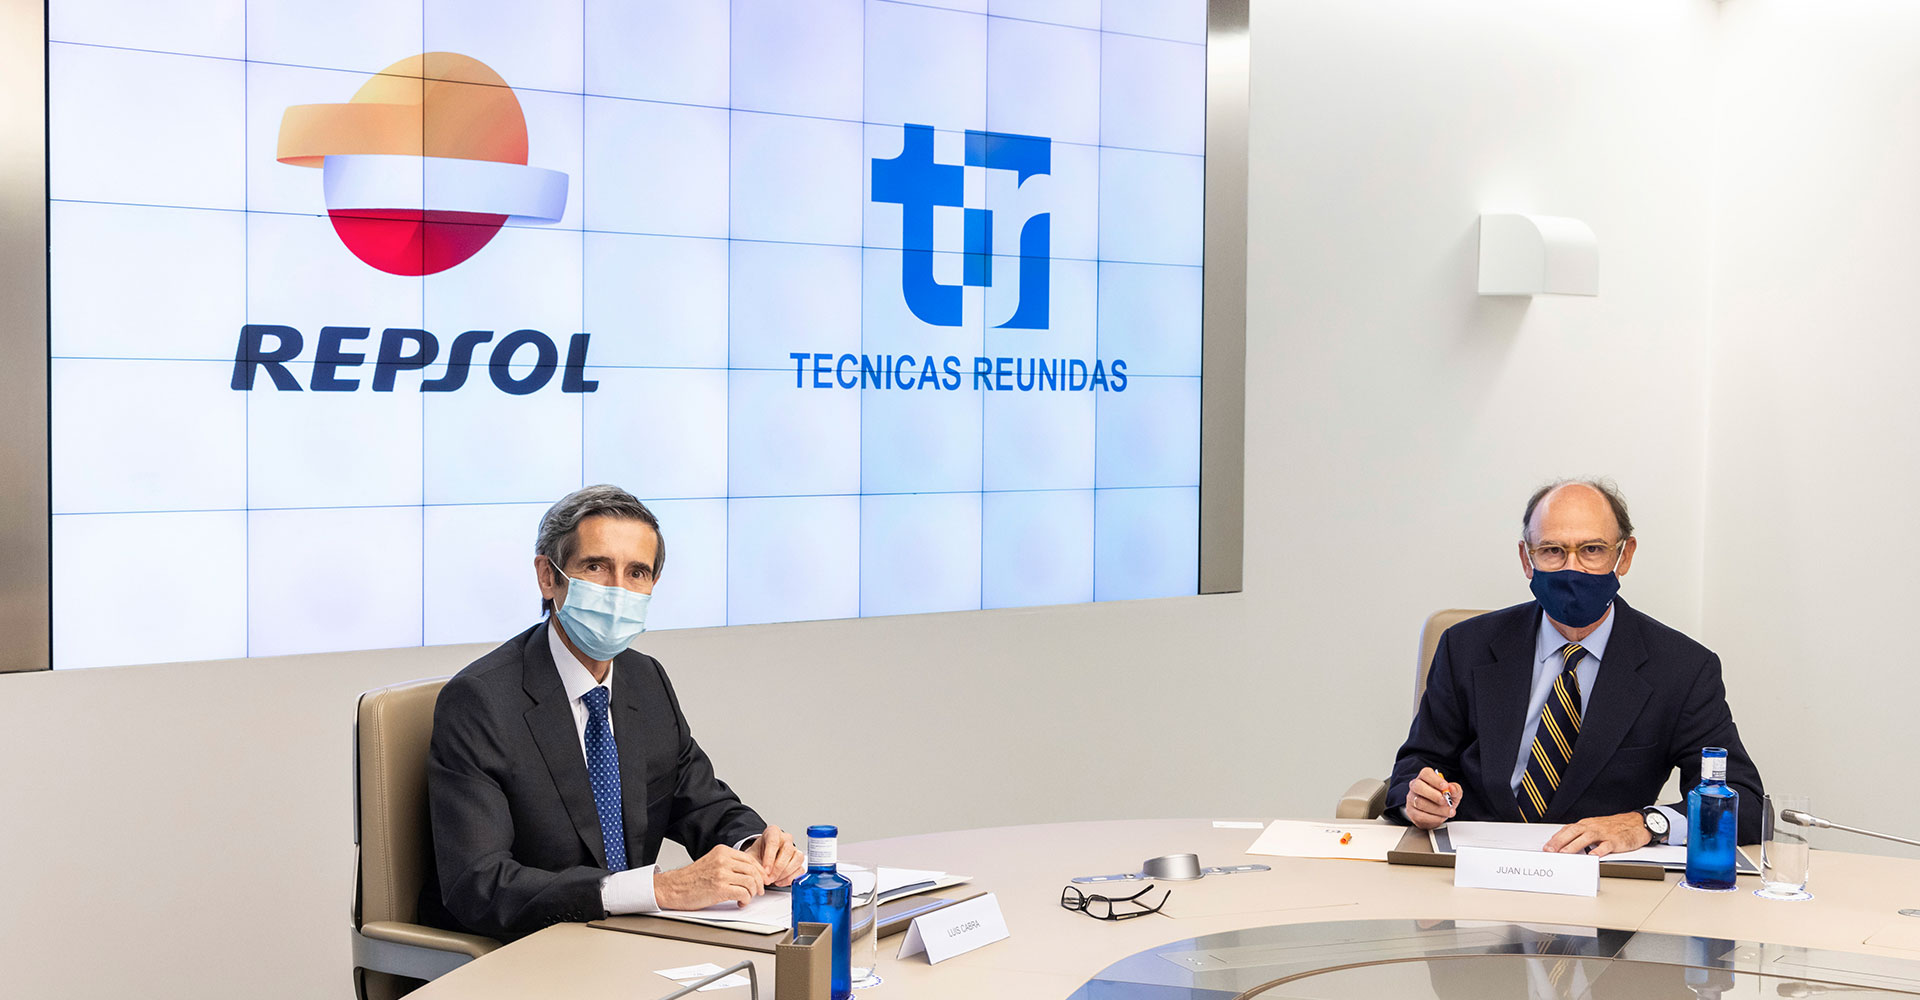 Técnicas Reunidas and Repsol will develop technologies for industrial decarbonization